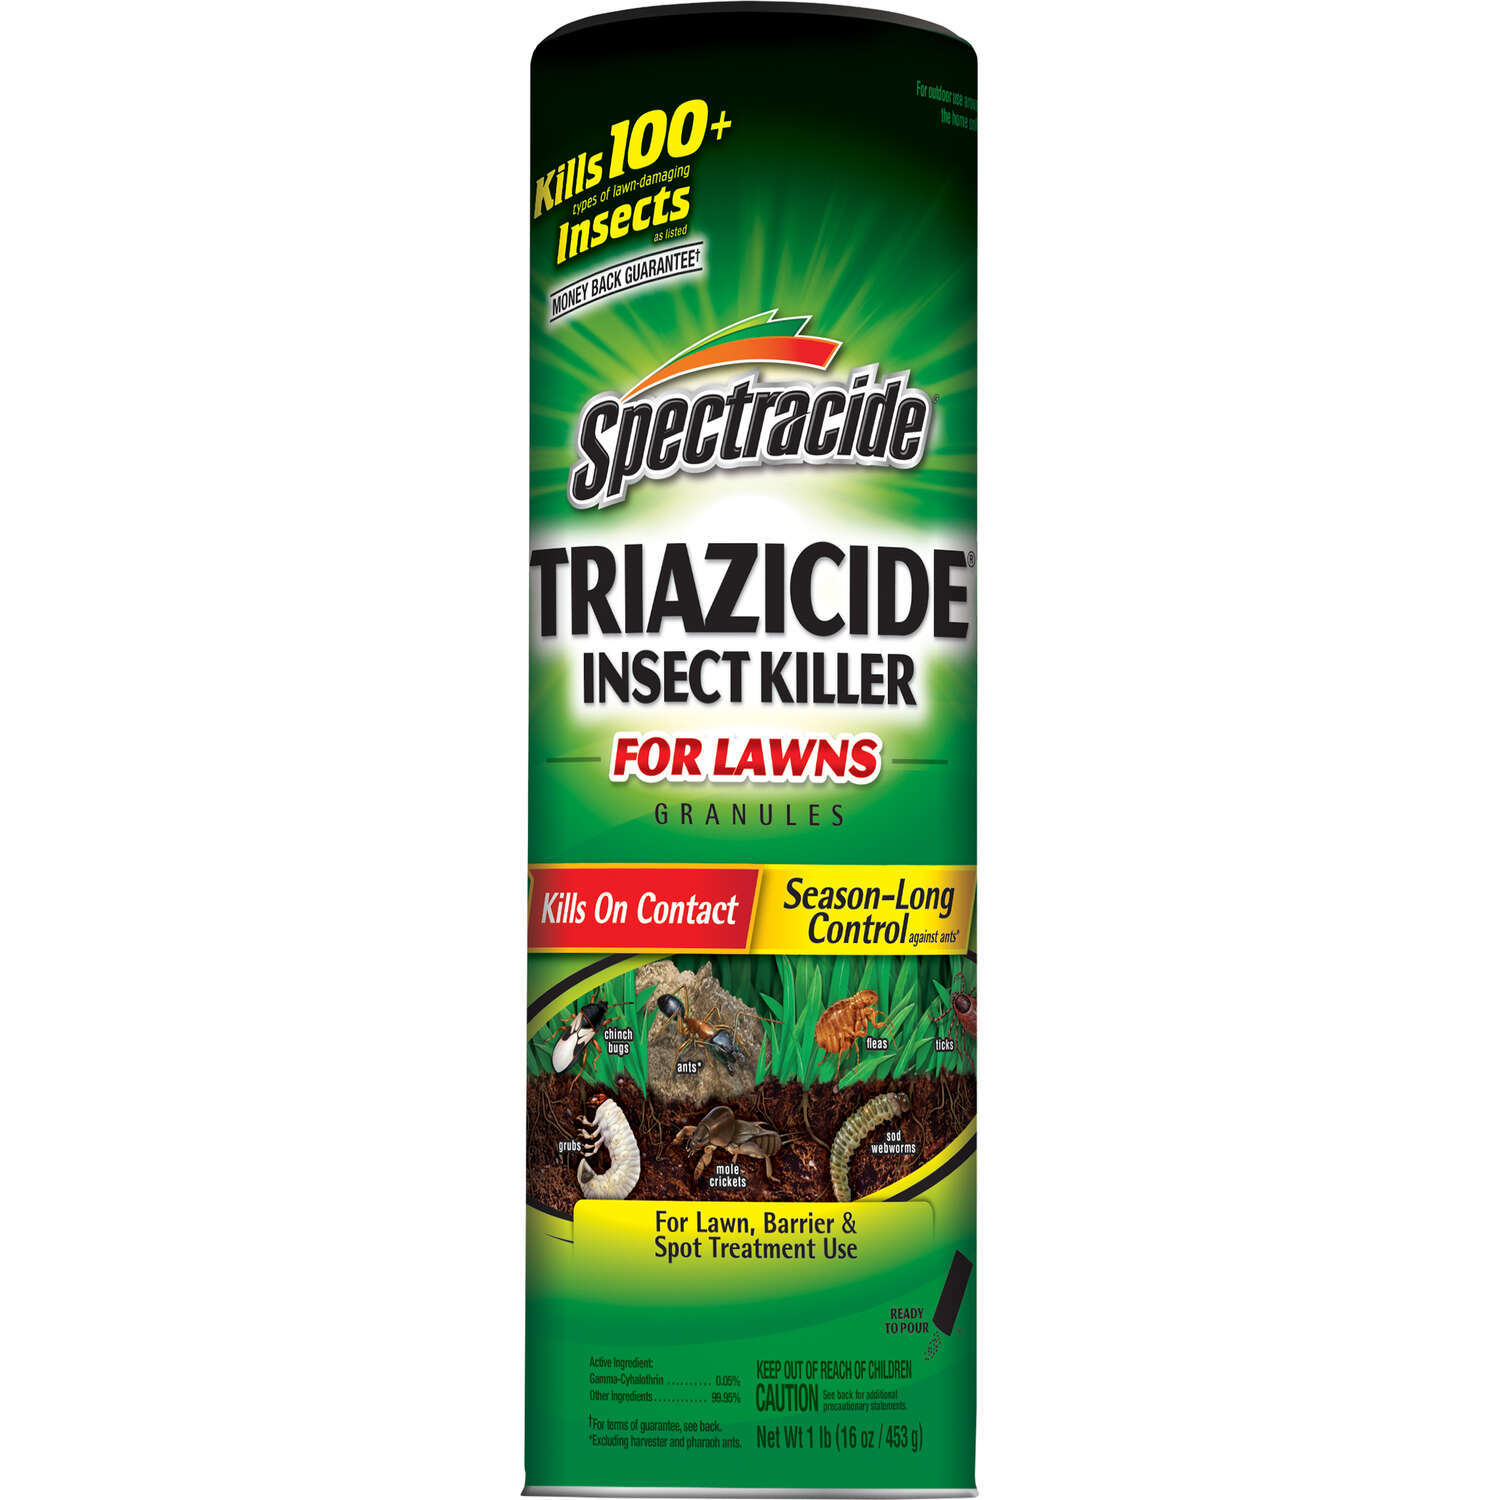 Spectracide  Triazicide for Lawns  Granules  Insect Killer  1 lb.